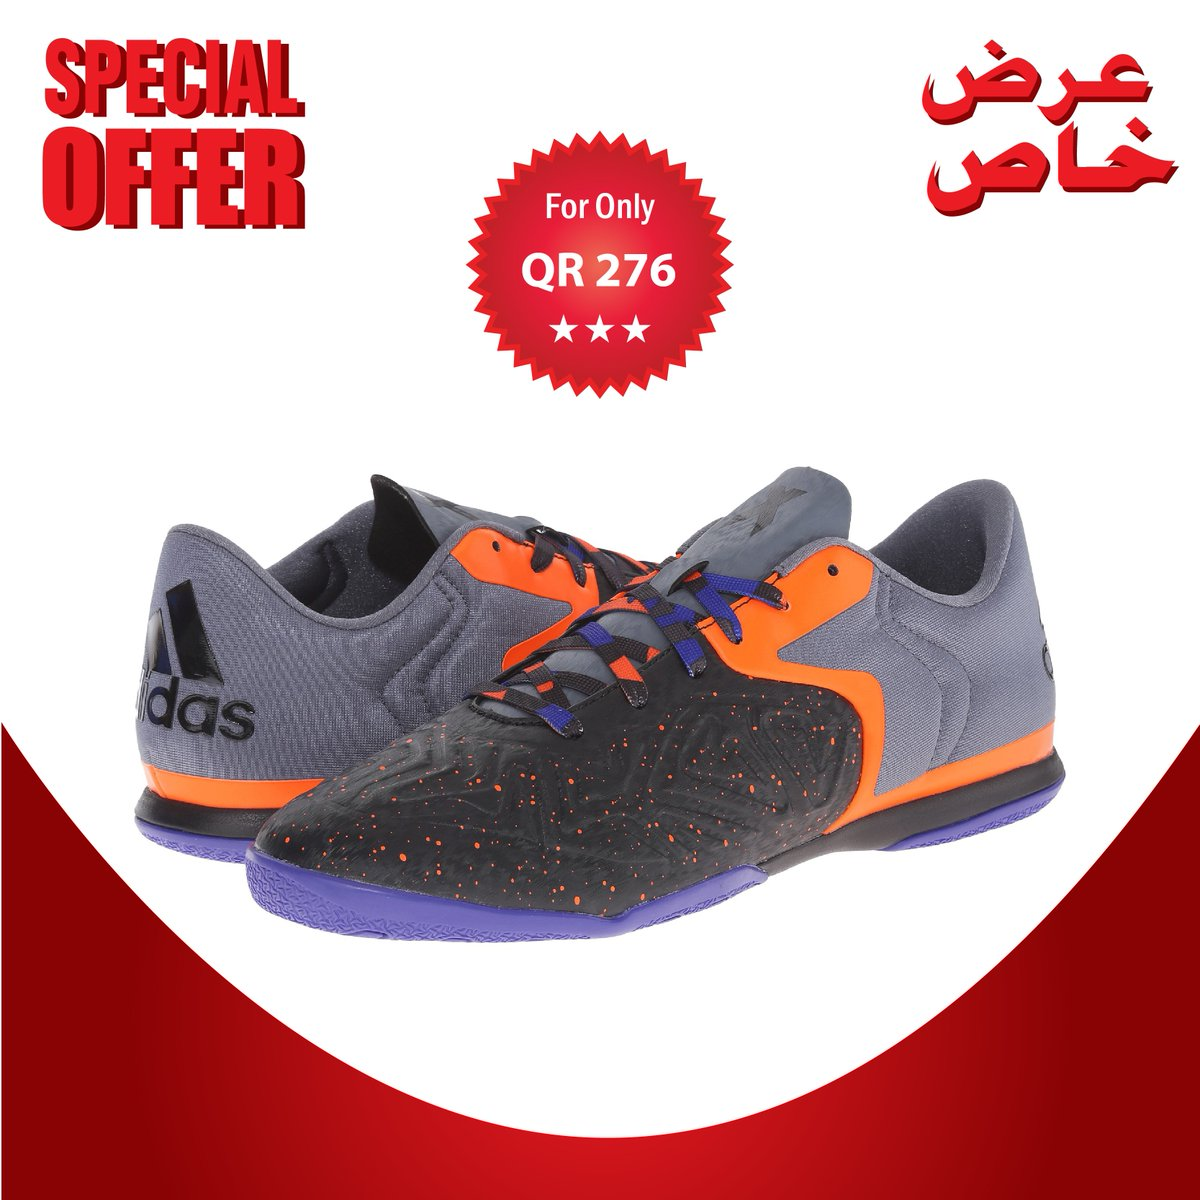 new style 6d07f 9ff16 Adidas Shoes Special Offer at Olympic Sports Qatar Doha pic.twitter.combOYoU5MlUx